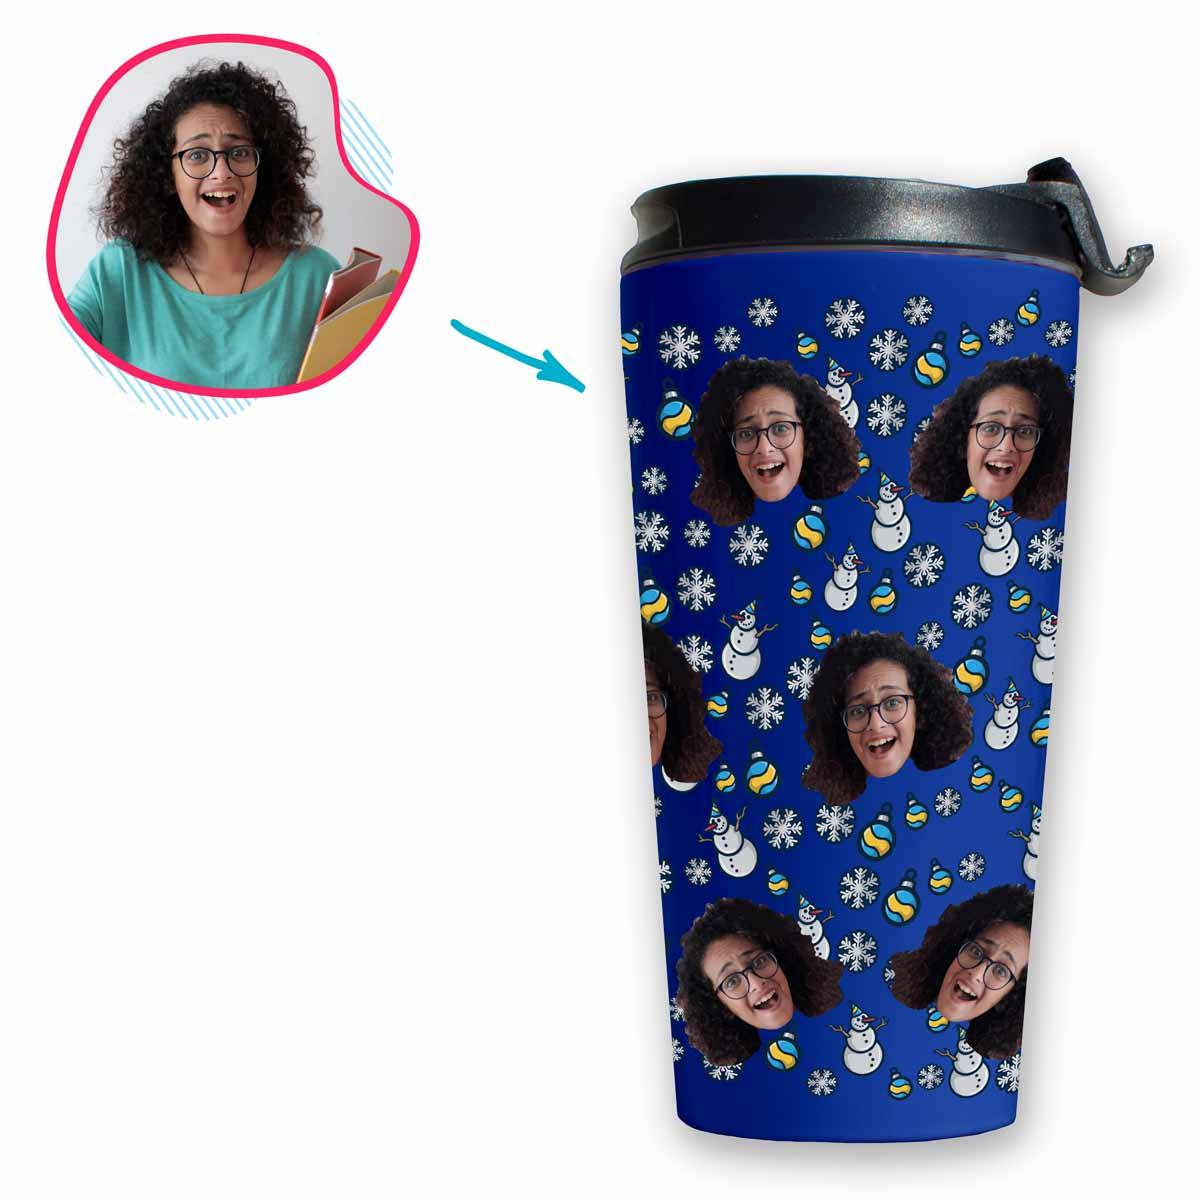 darkblue Snowman travel mug personalized with photo of face printed on it